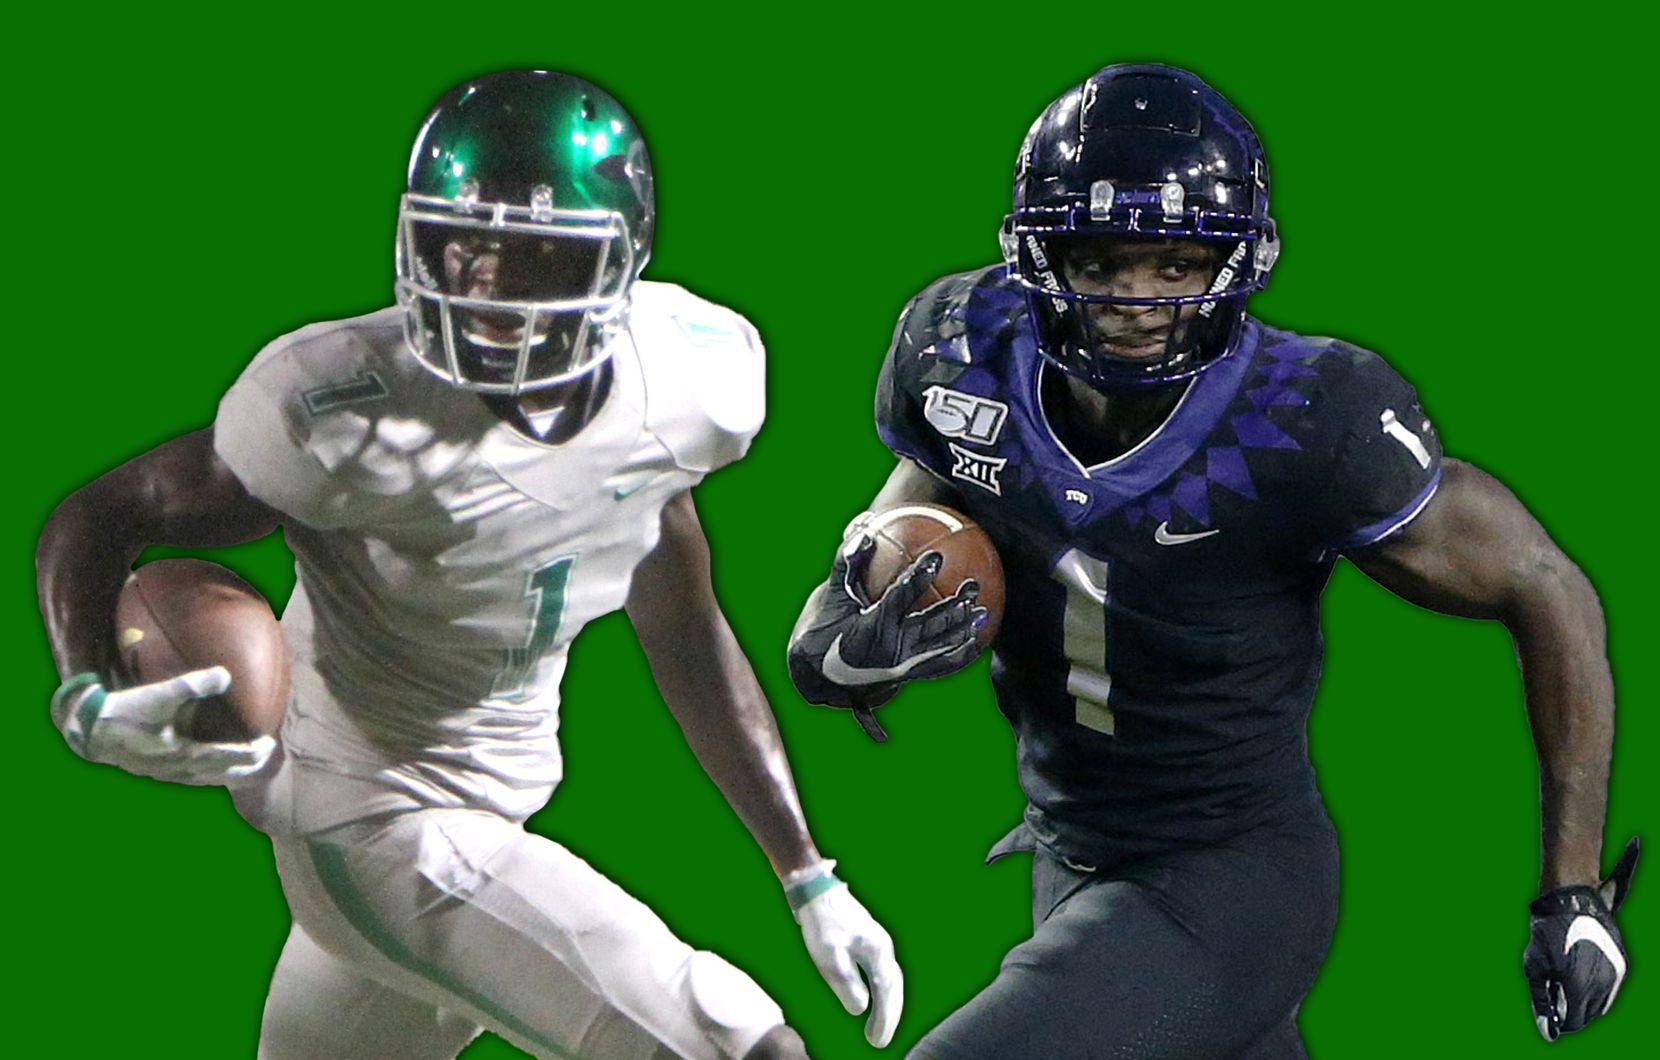 Jalen Reagor with Waxahachie in 2016 (left) and TCU in